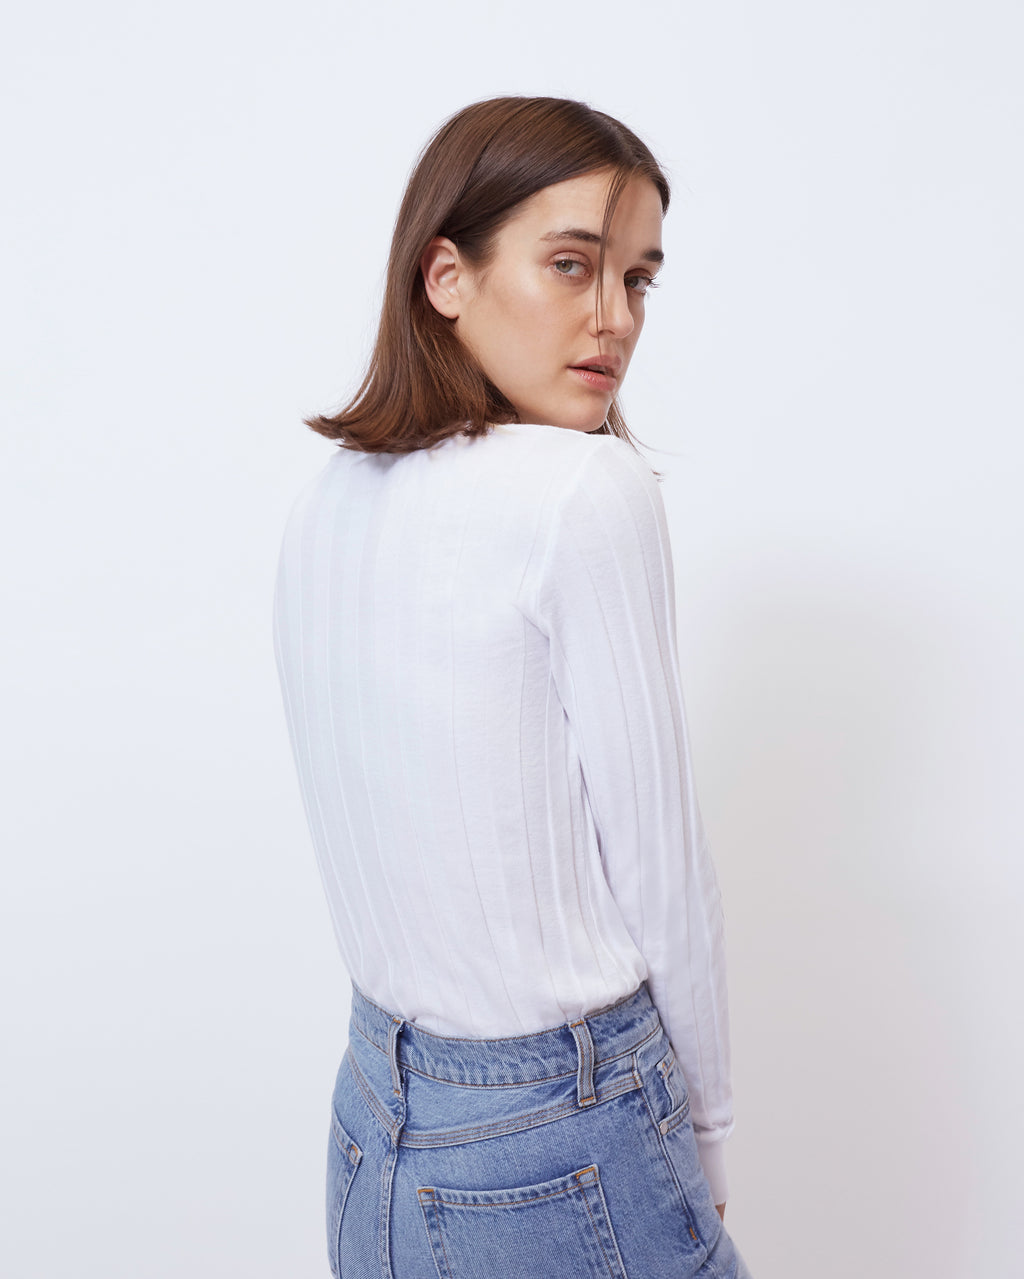 The Clover Top in Optic White